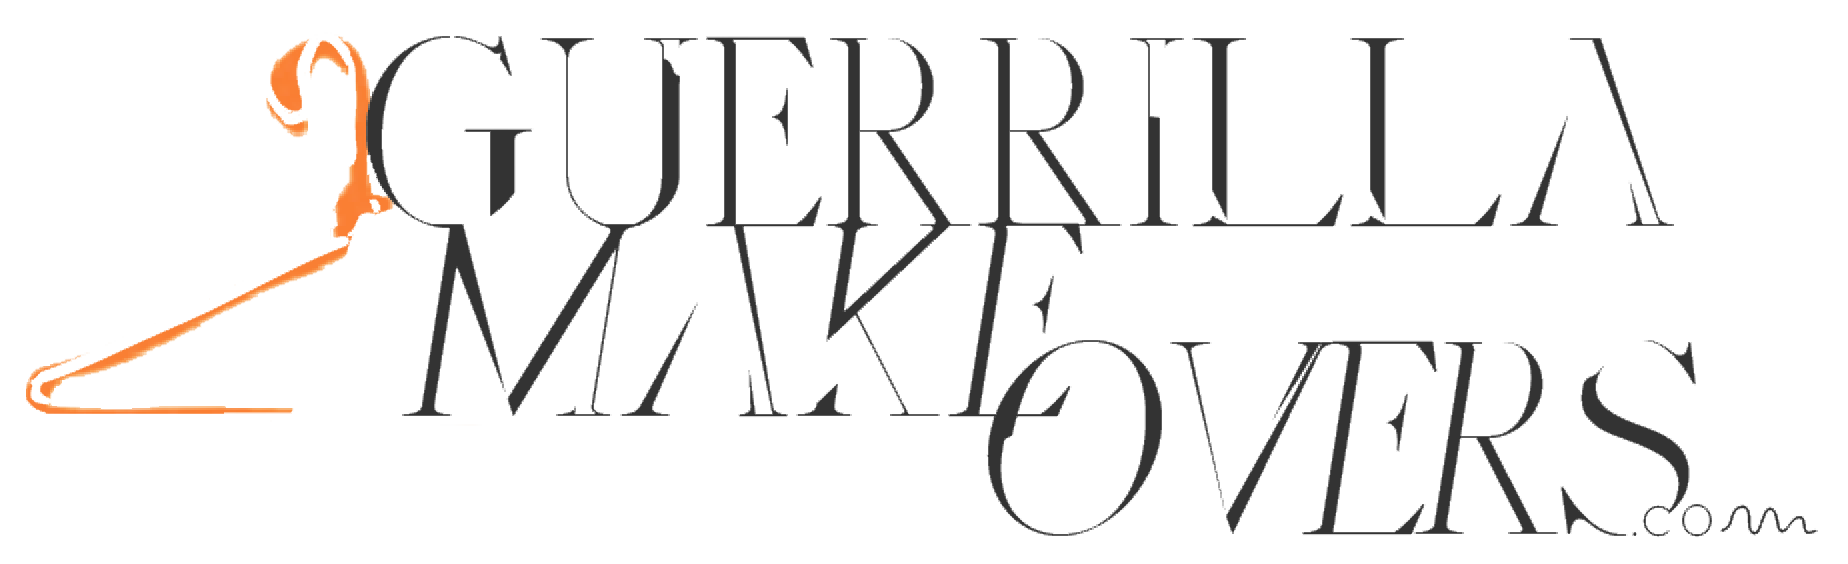 Guerrilla Makeovers logo